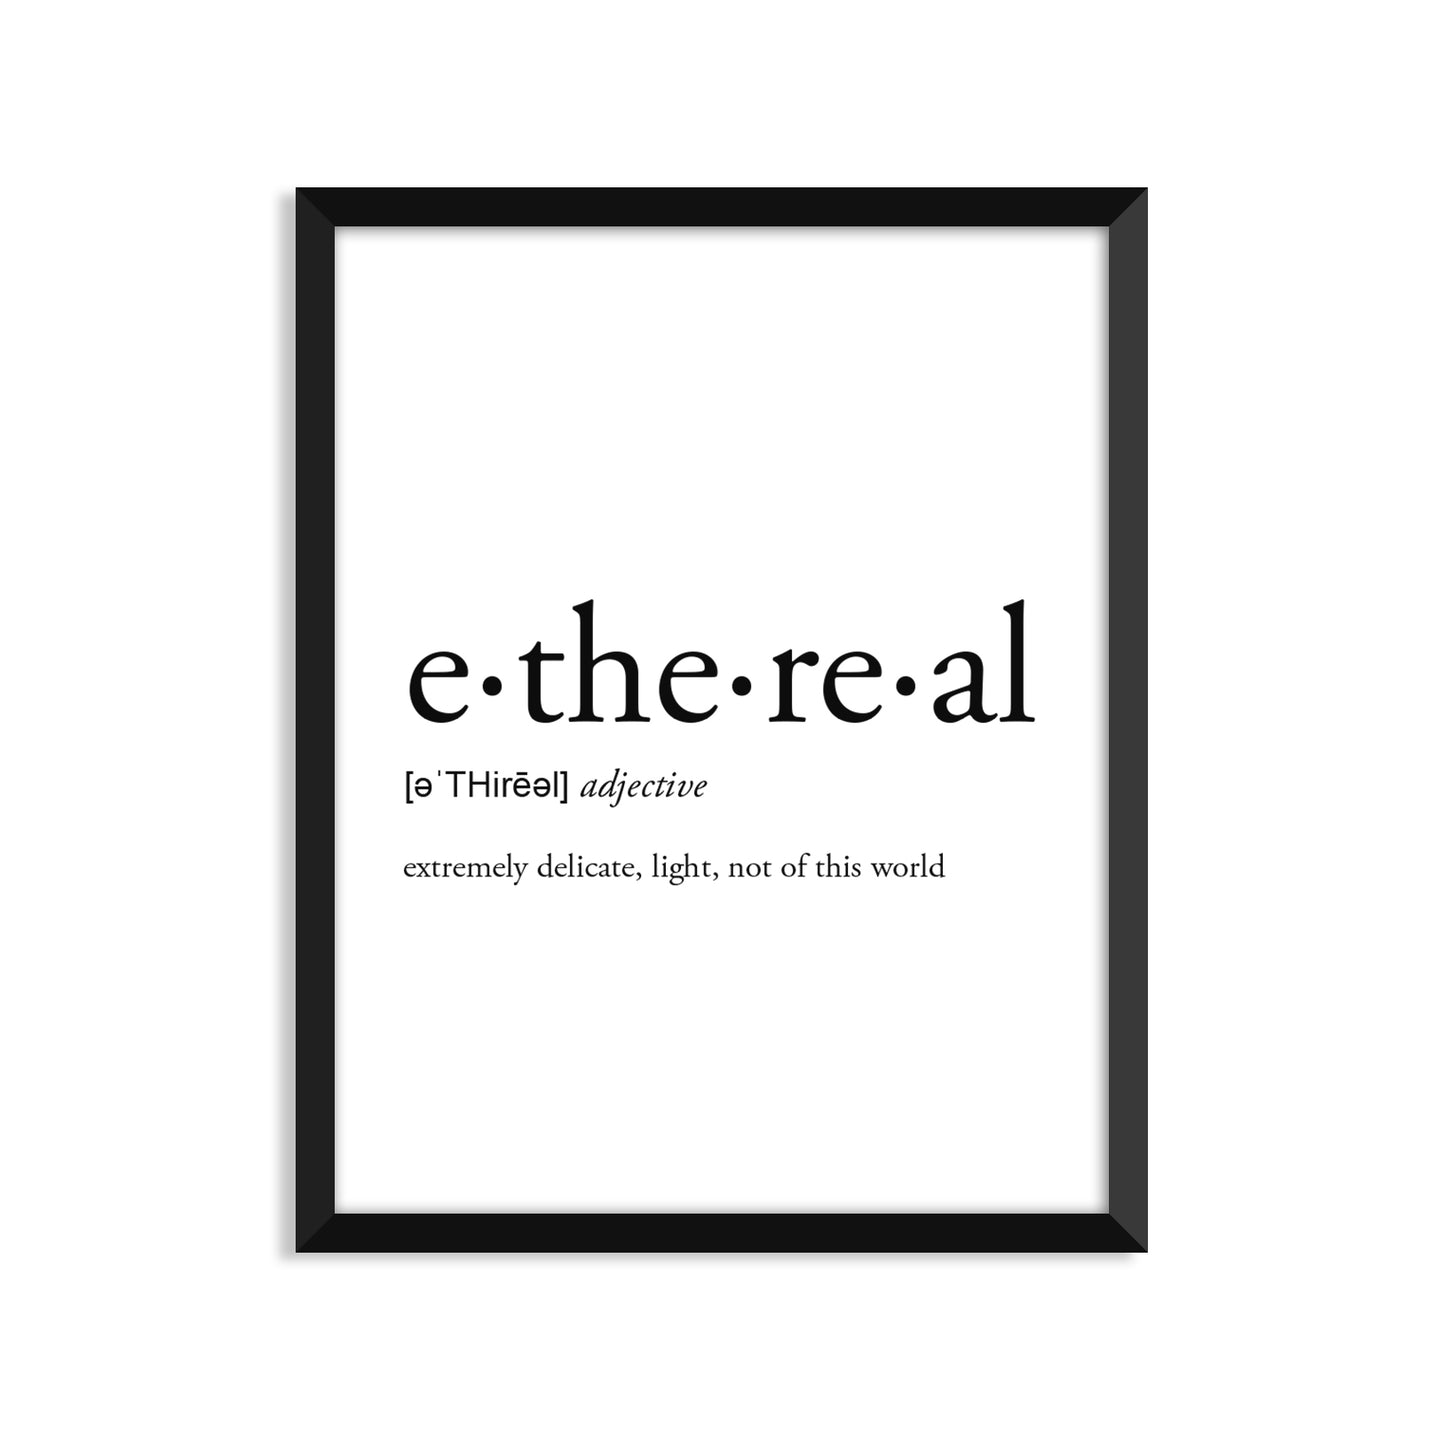 Ethereal Definition - Unframed Art Print Or Greeting Card